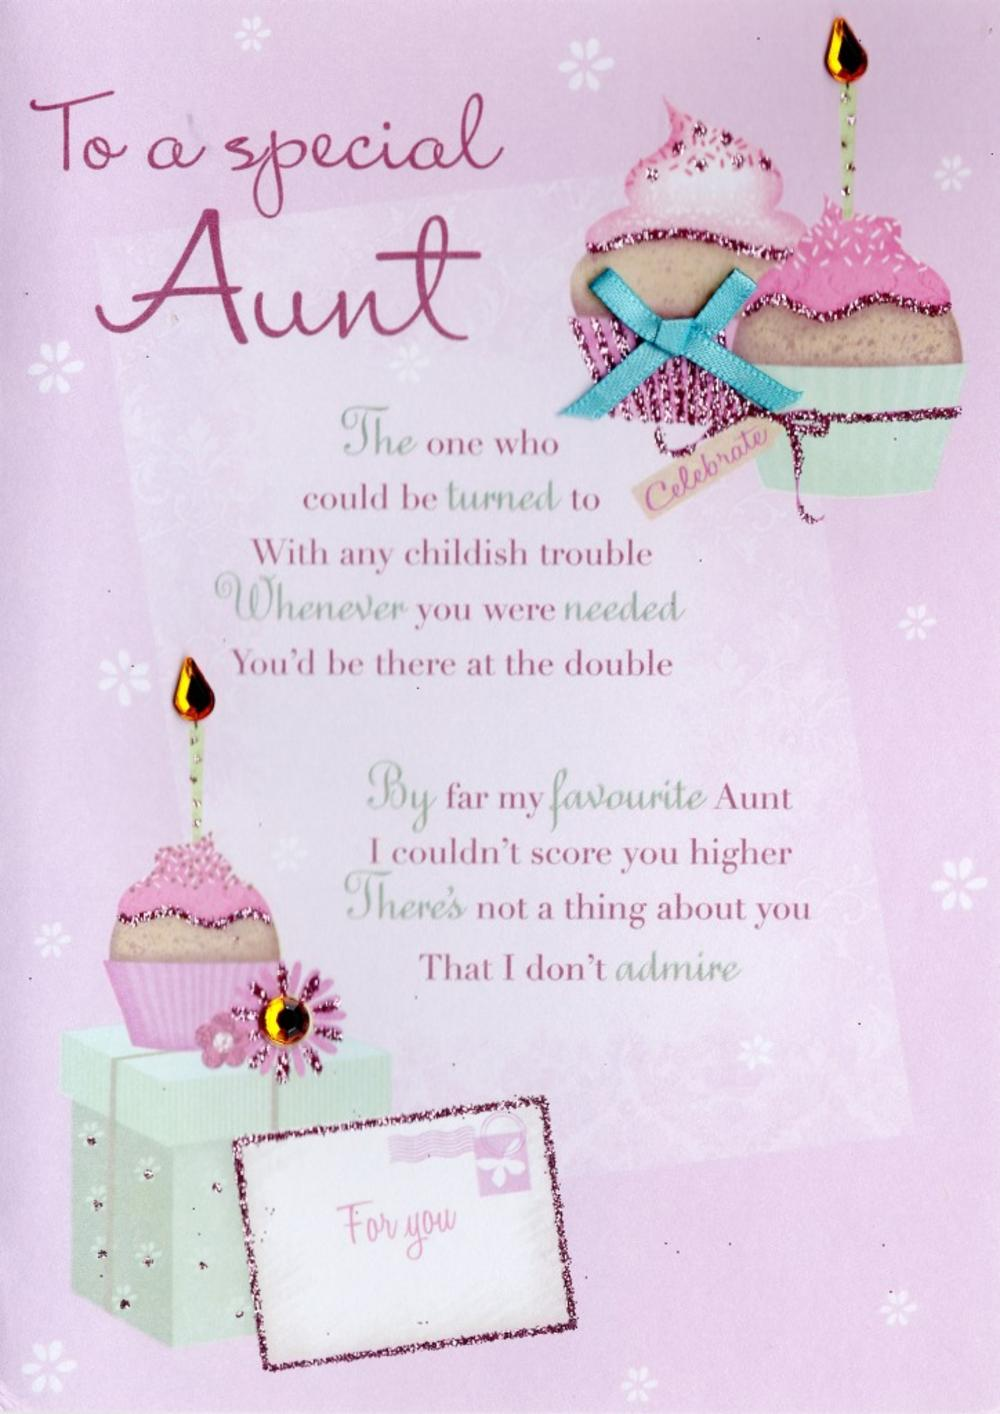 Special aunt birthday greeting card cards love kates special aunt birthday greeting card bookmarktalkfo Choice Image